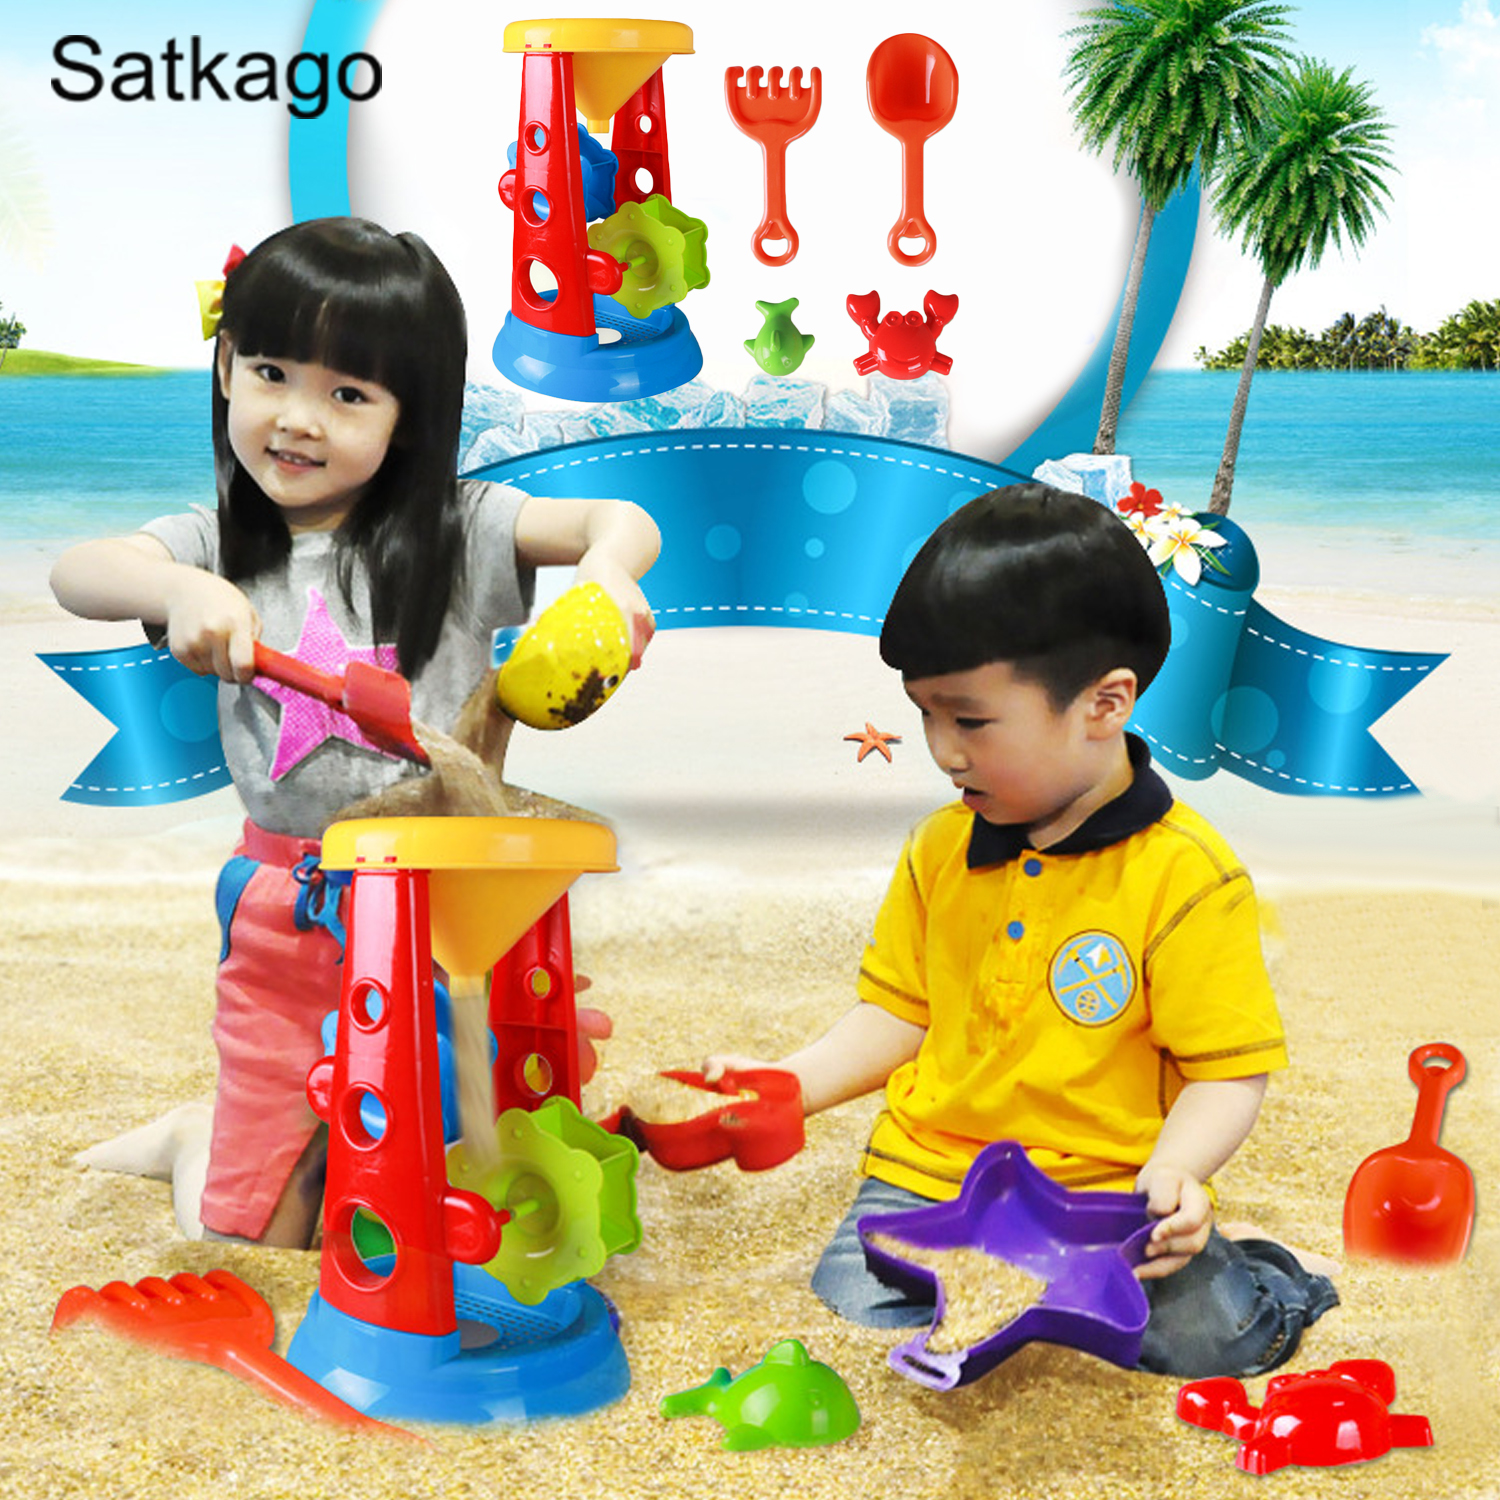 Satkago 5pcs Funny Kids Beach Sand Game Toys Set Including Shovels Rake Hourglass Bucket Kids Beach Playset Role Play Toy Kit